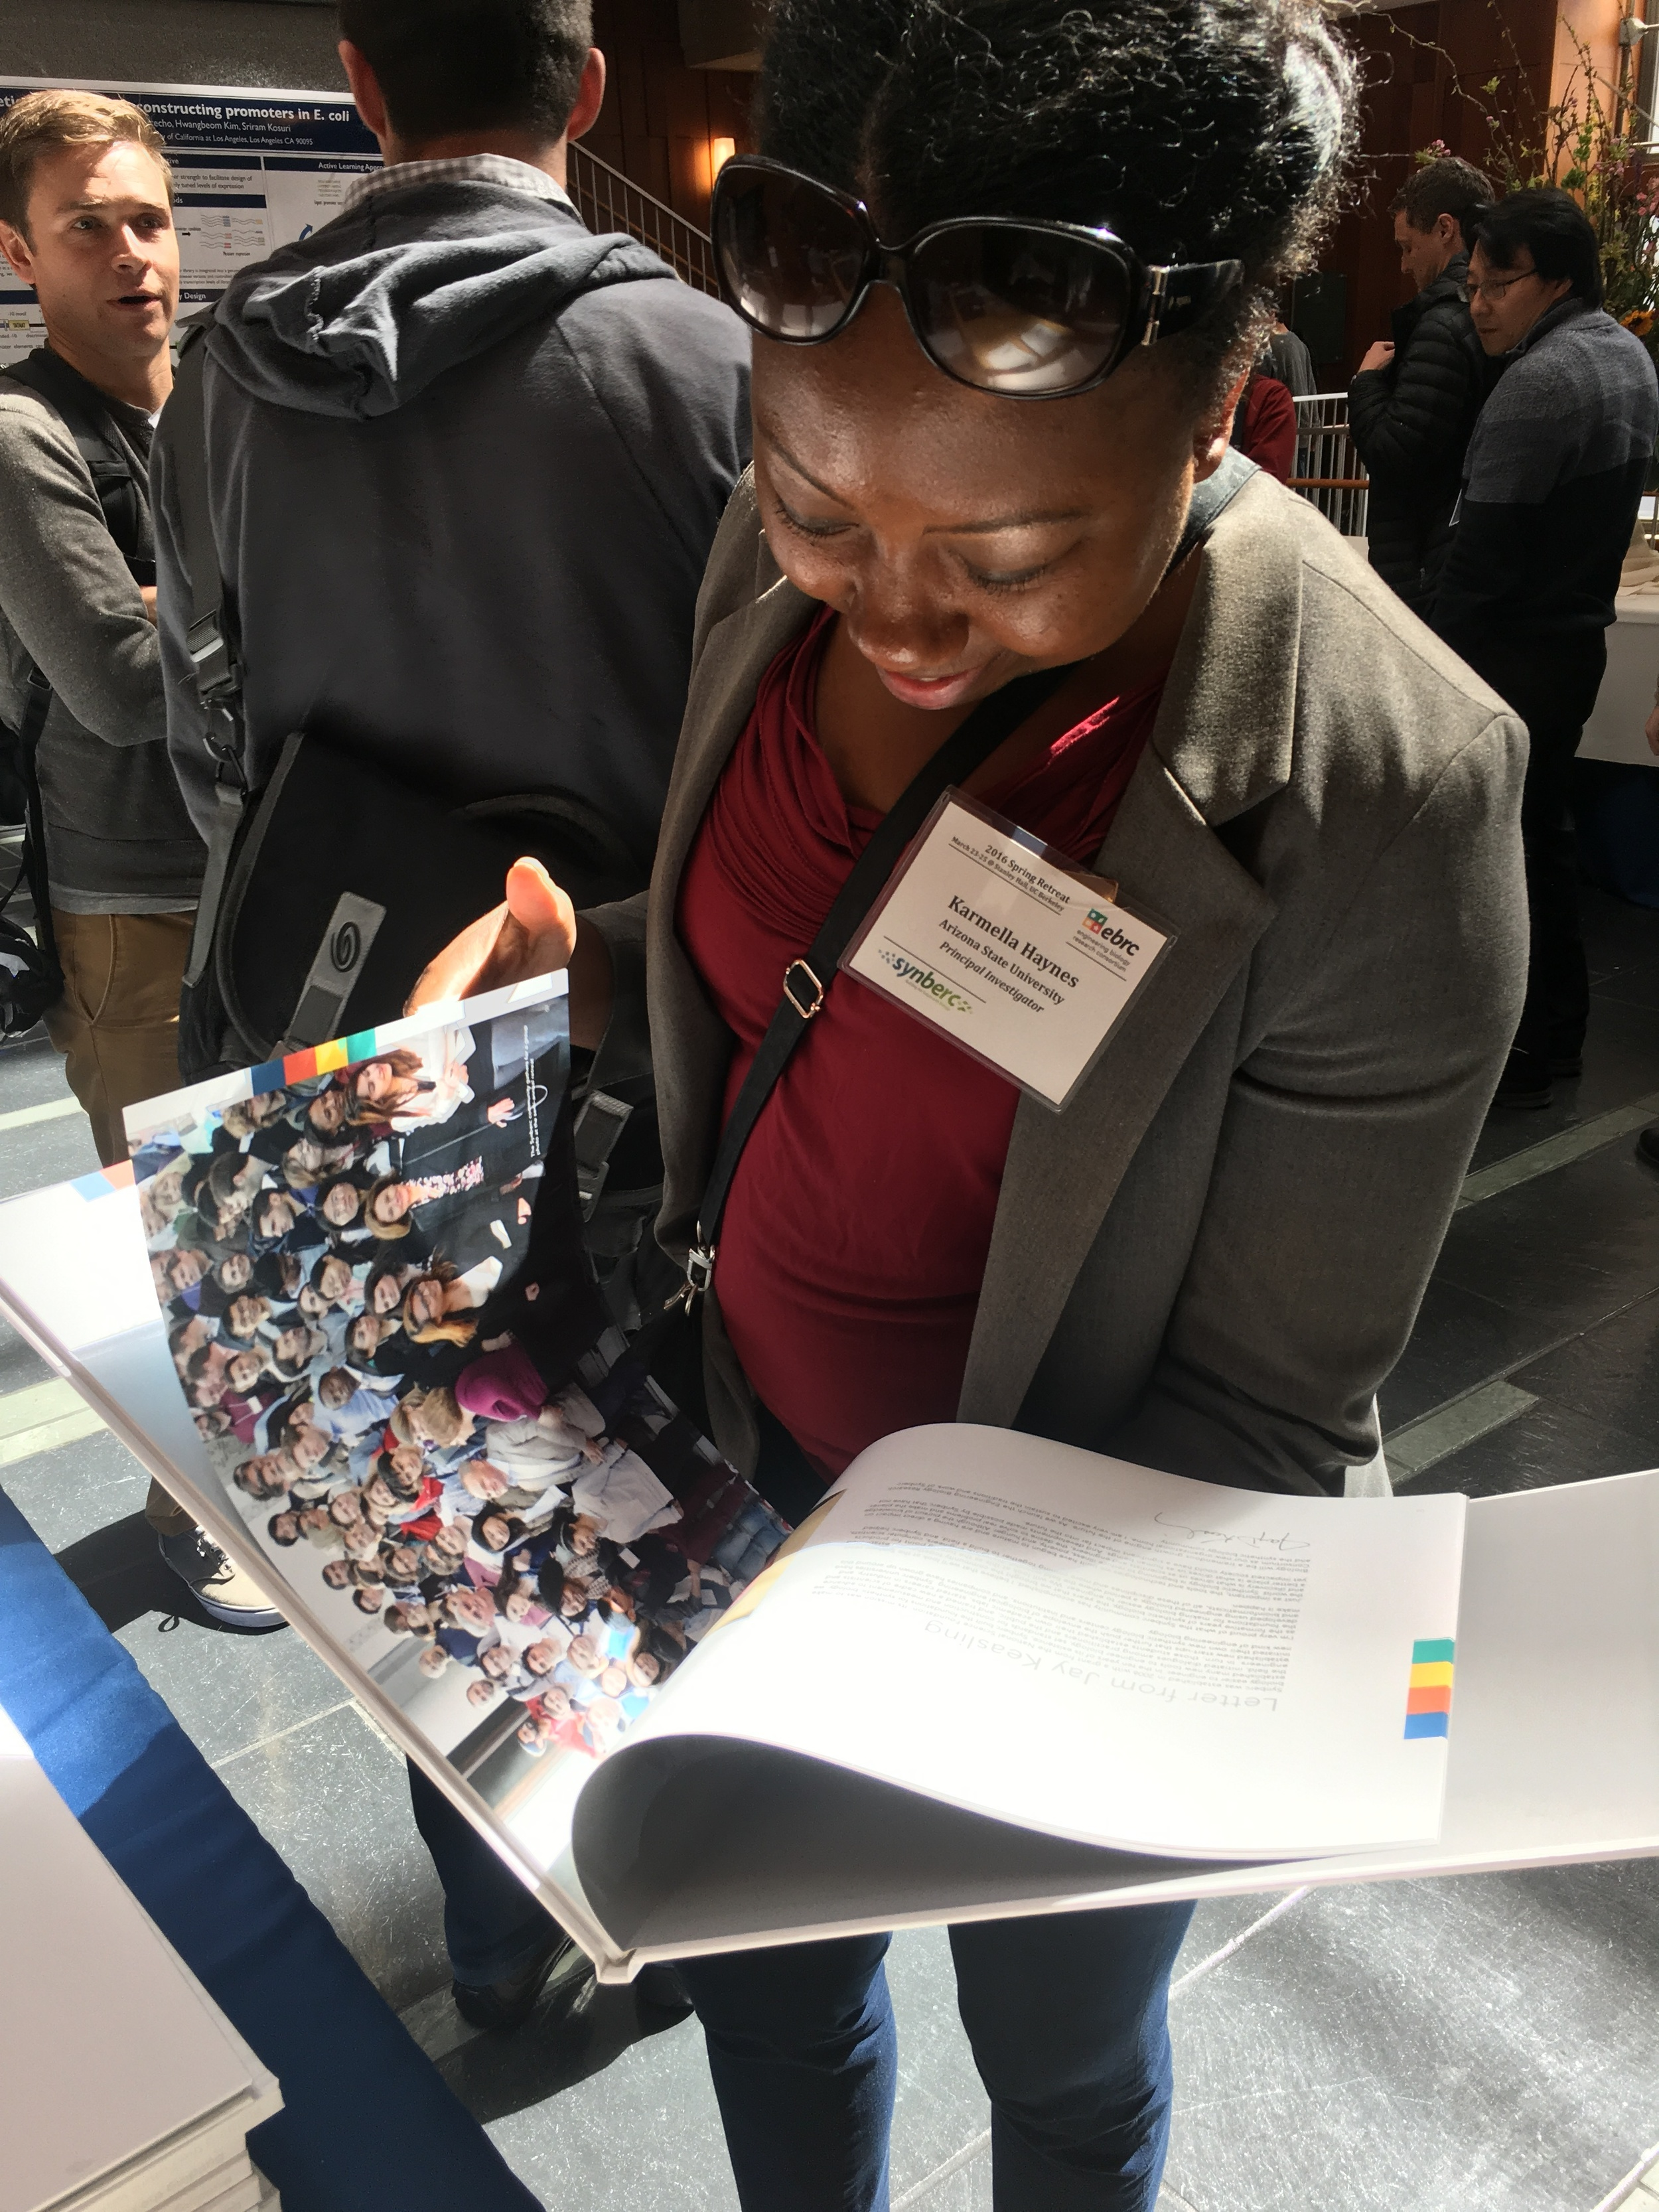 EBRC Board member and researcher ( ARIZONA STATE) Karmella Haynes thumbs through the pages of the book